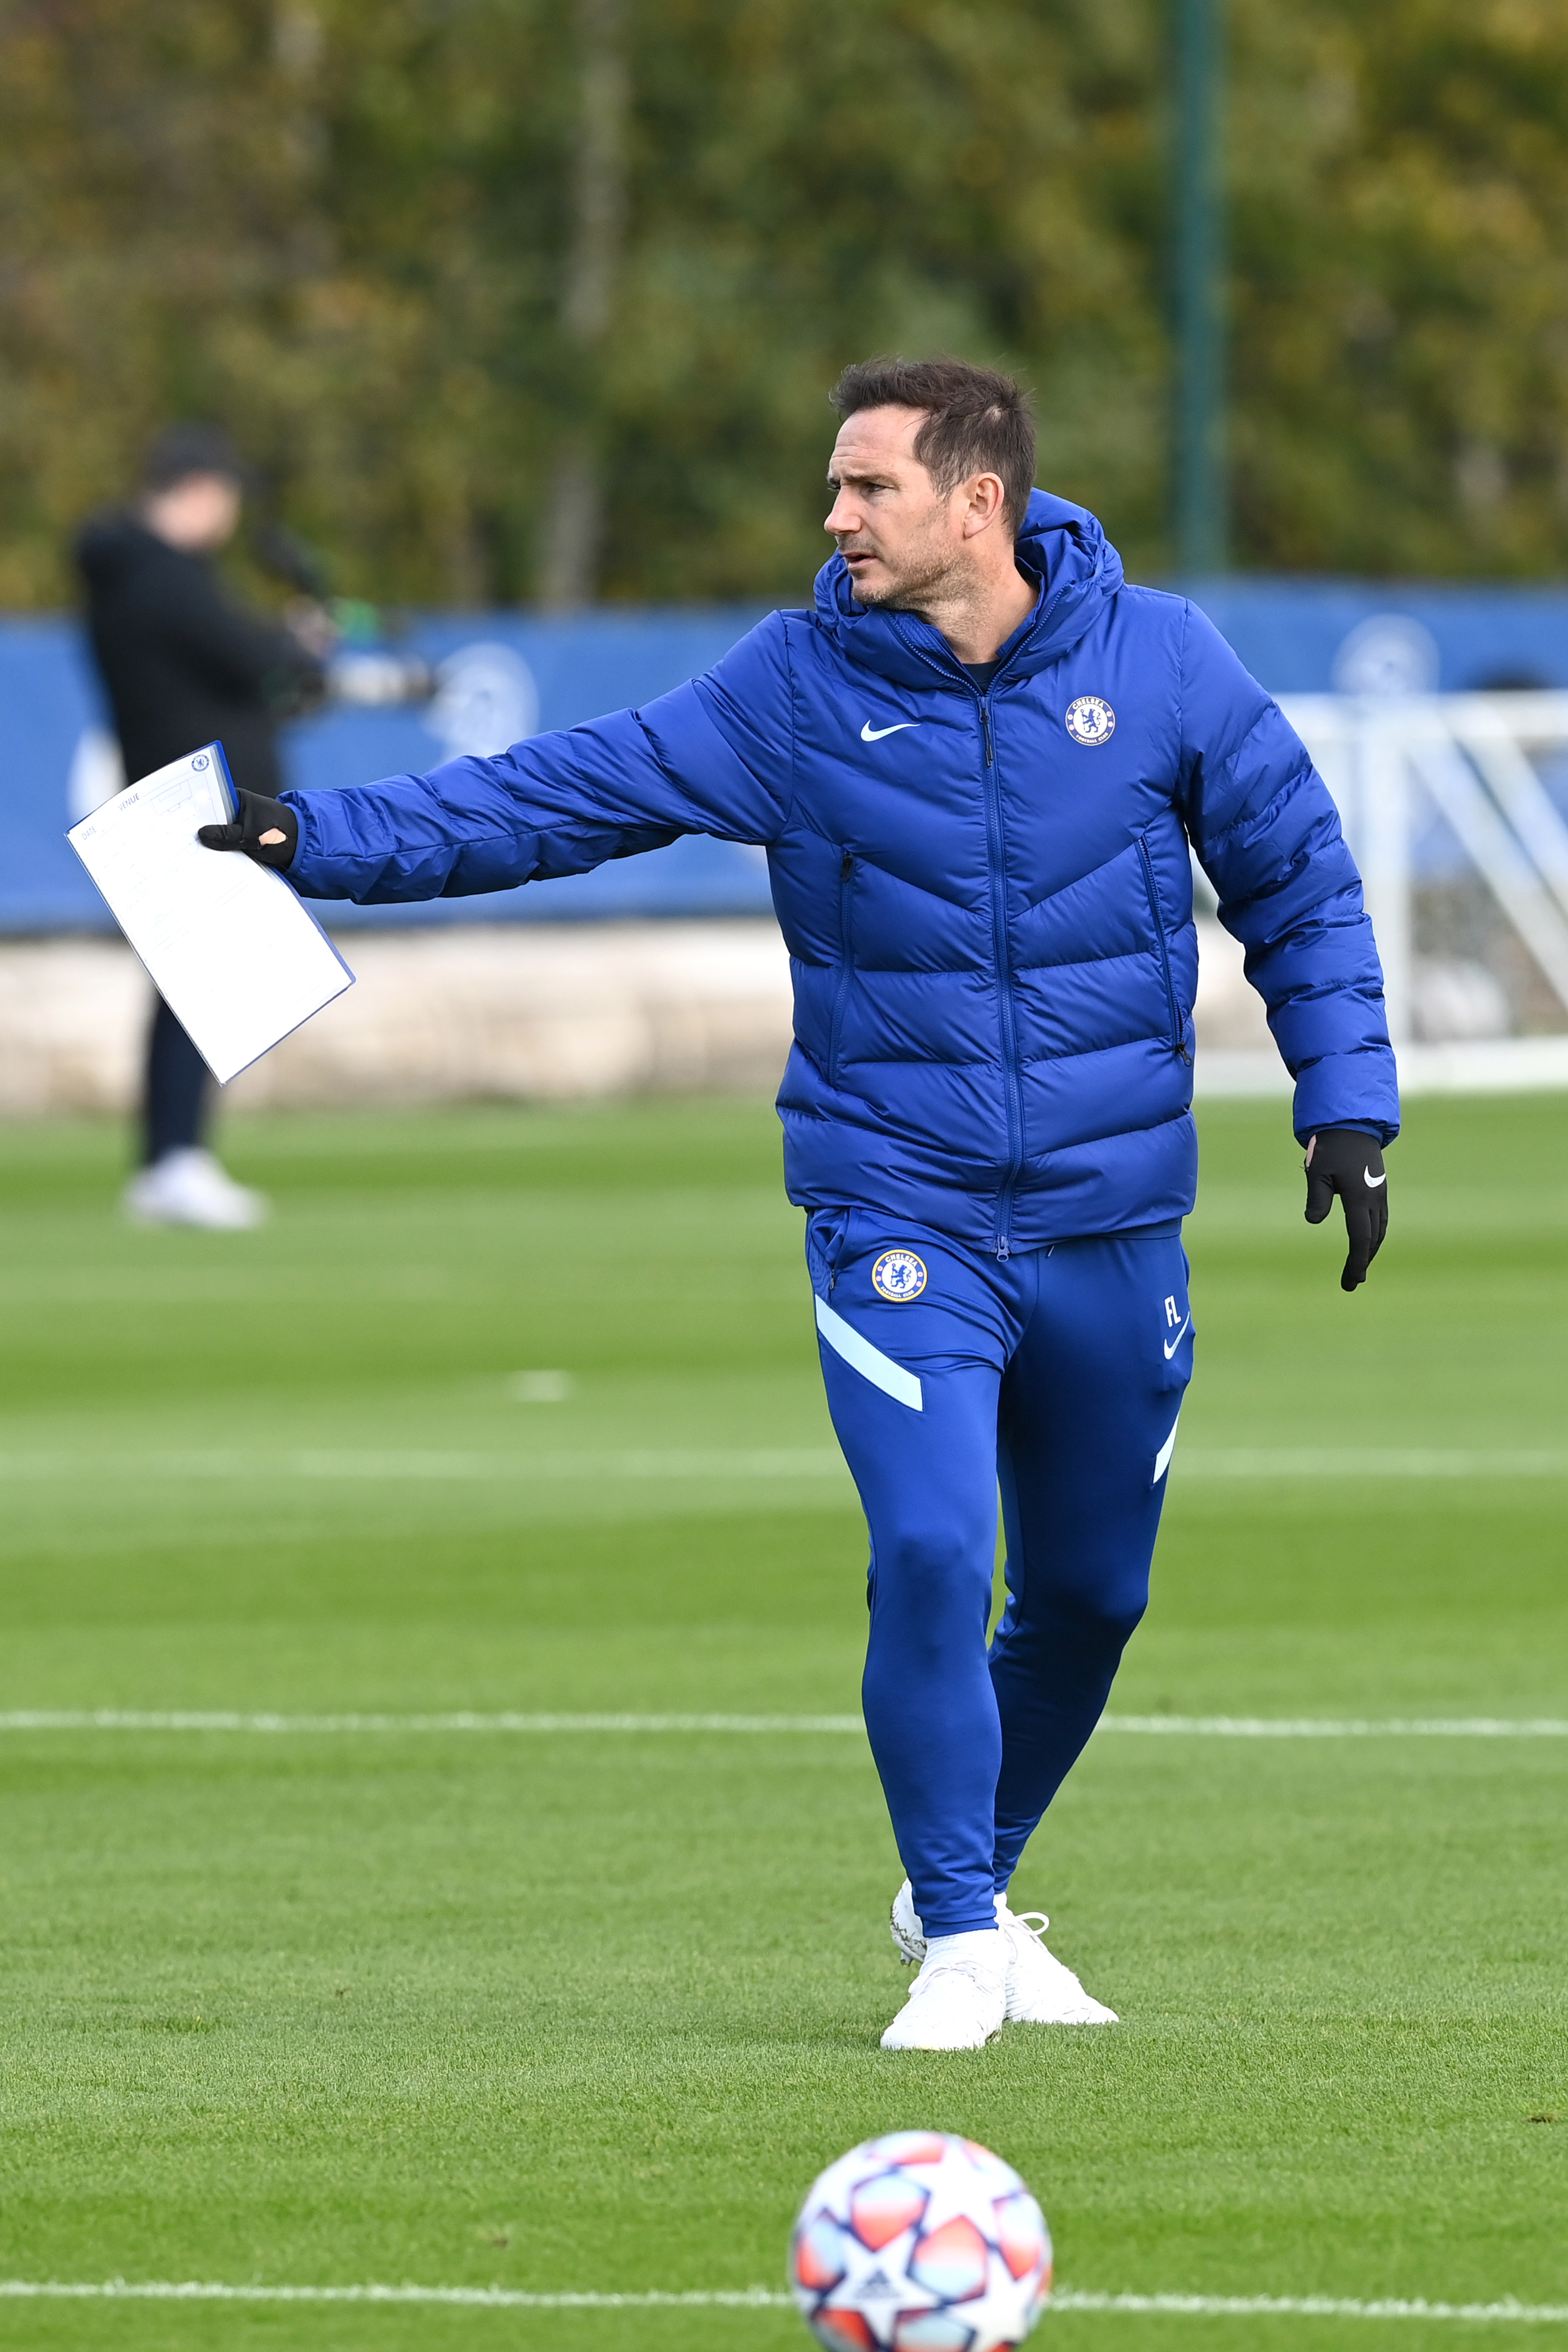 Chelsea Press Conference And Training Session